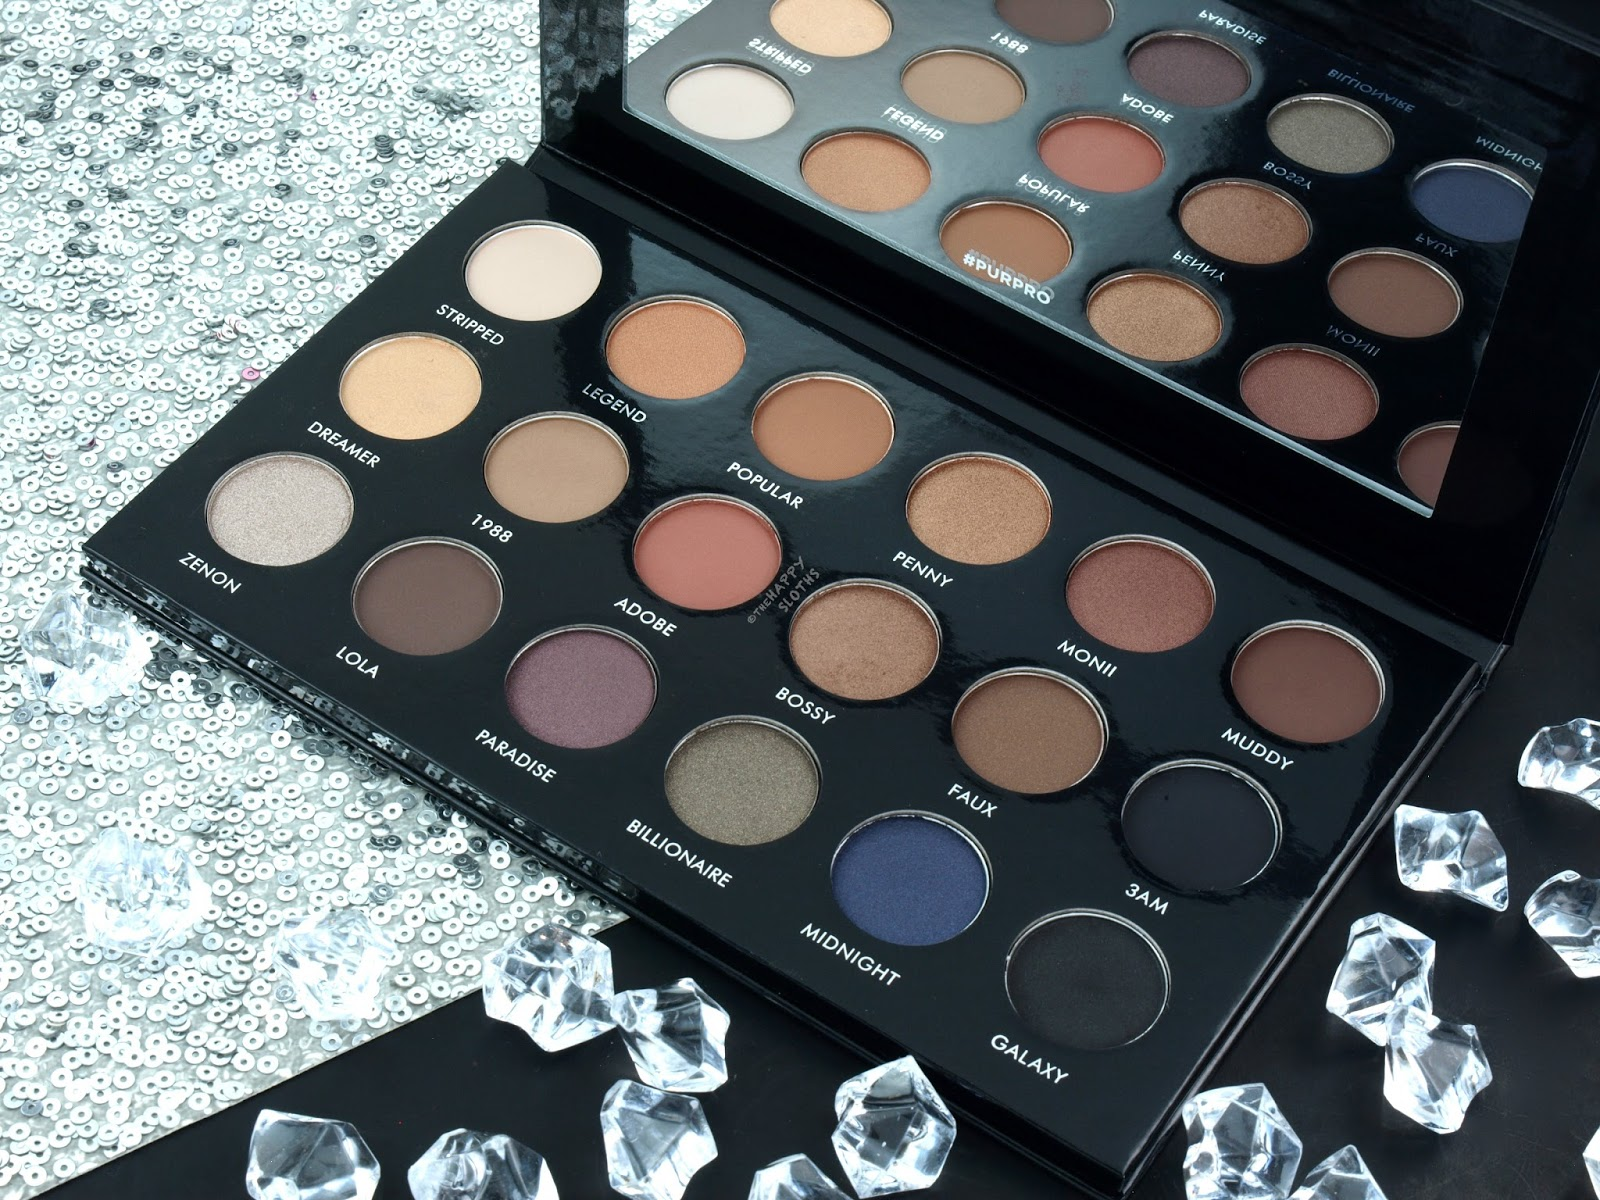 PUR PRO x Etienne Ortega Eyeshadow Palette: Review and Swatches